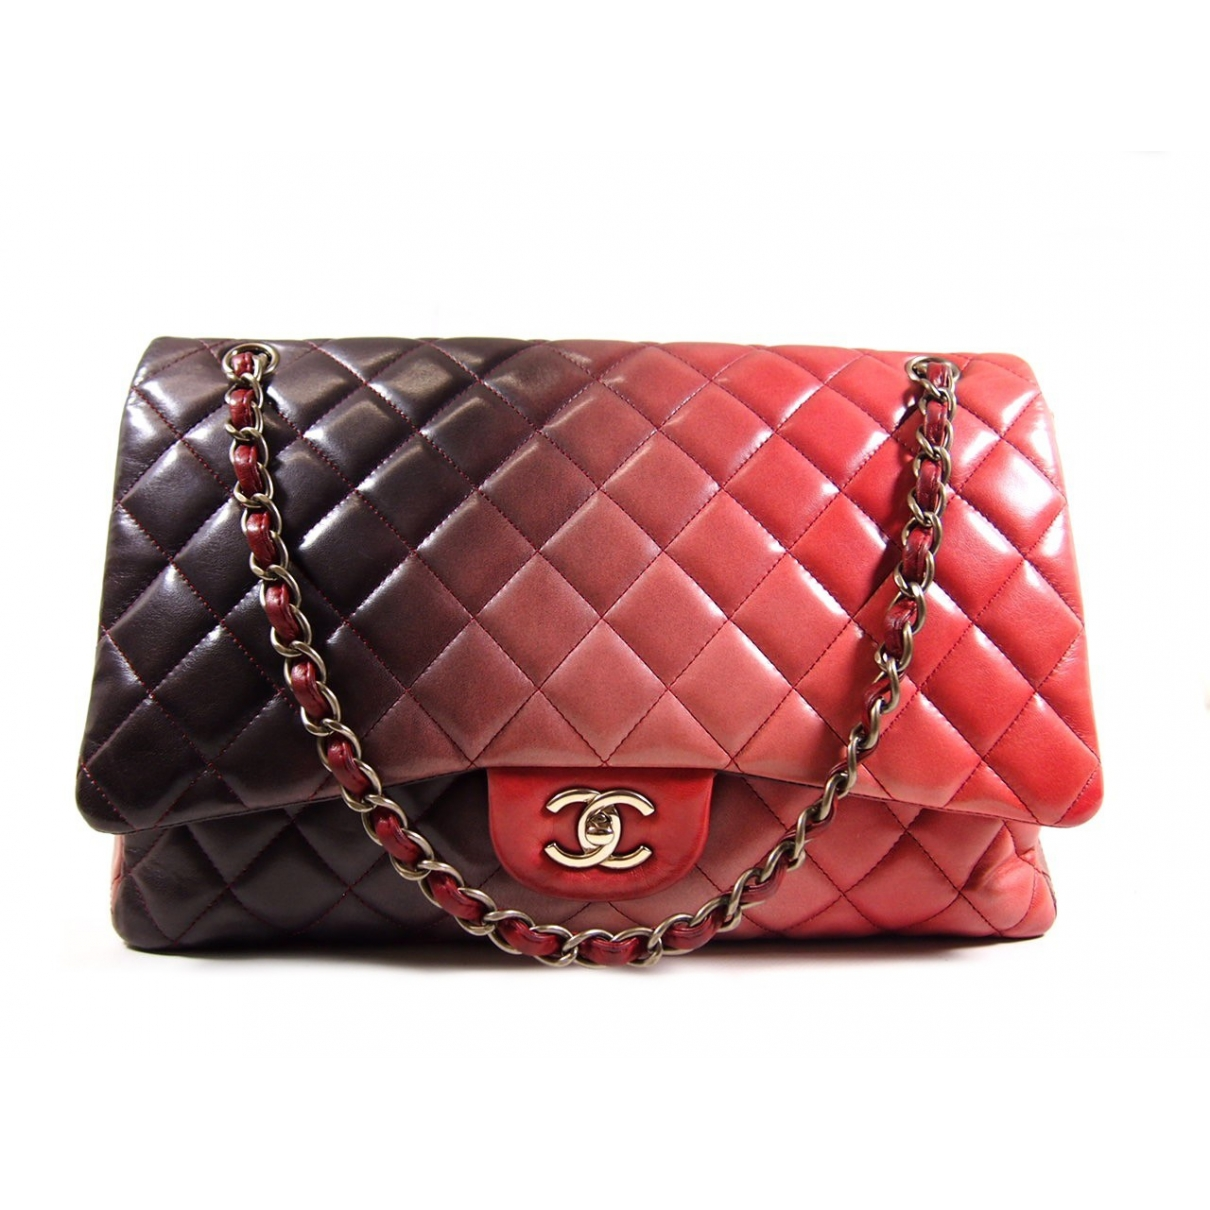 Chanel 2.55 Leather handbag for Women \N